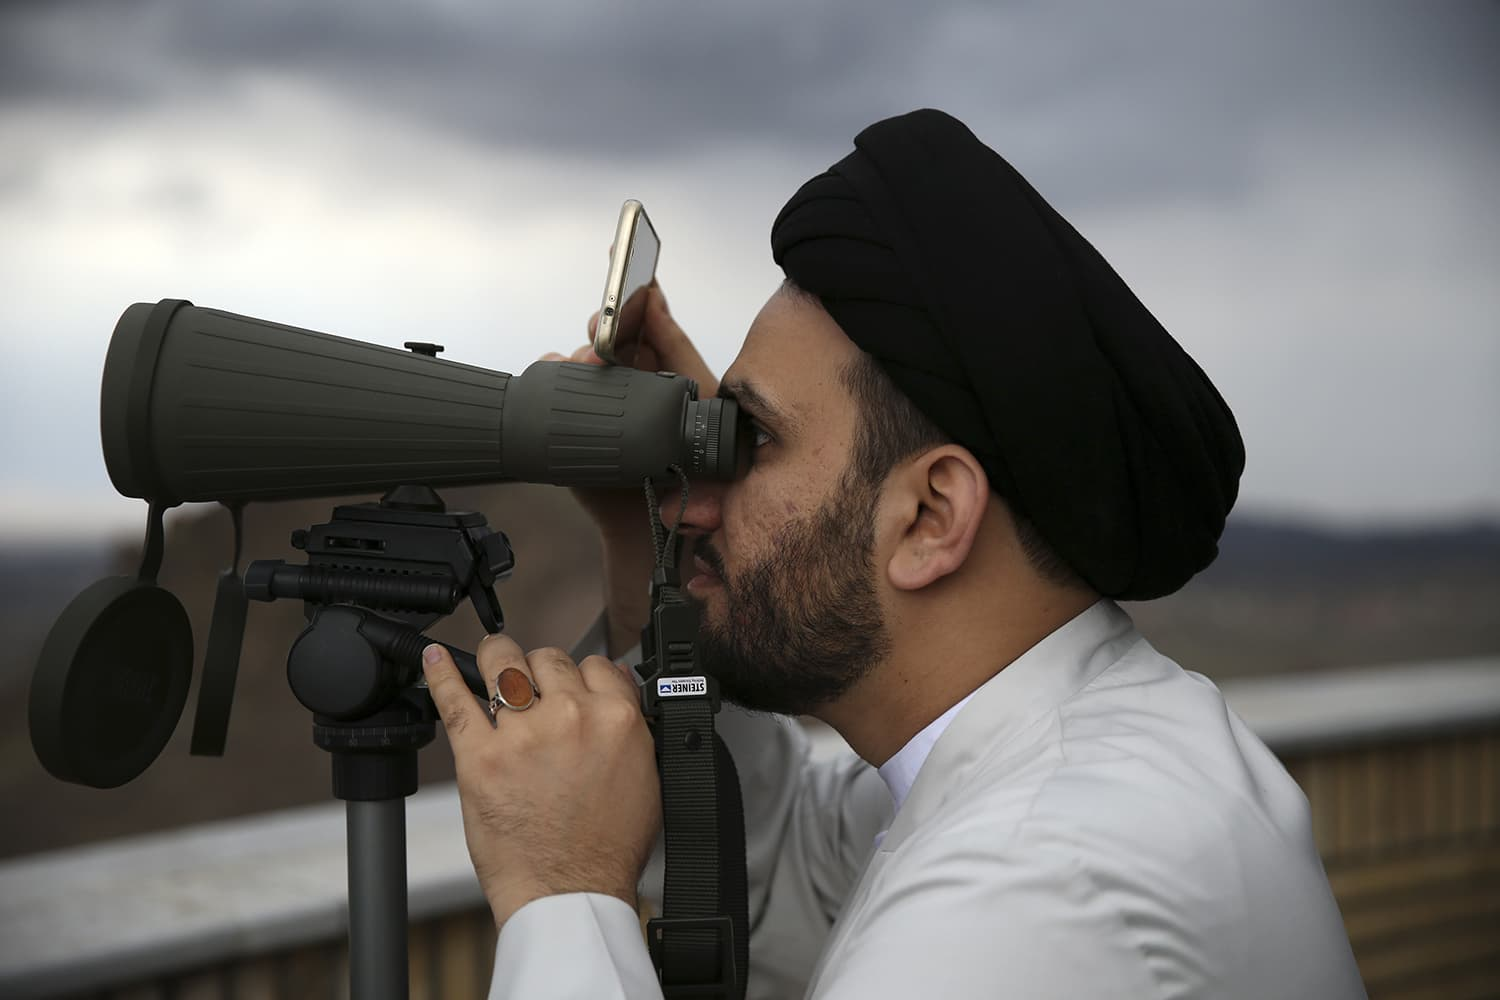 Iranian cleric Mohammad Hossein Dehsorkhi looks through binoculars for the new moon that signals the start of the Islamic holy month of Ramazan, at the Imam Ali observatory about 45 kilometres outside the holy city of Qom, south of the capital Tehran, Iran on Wednesday. - AP